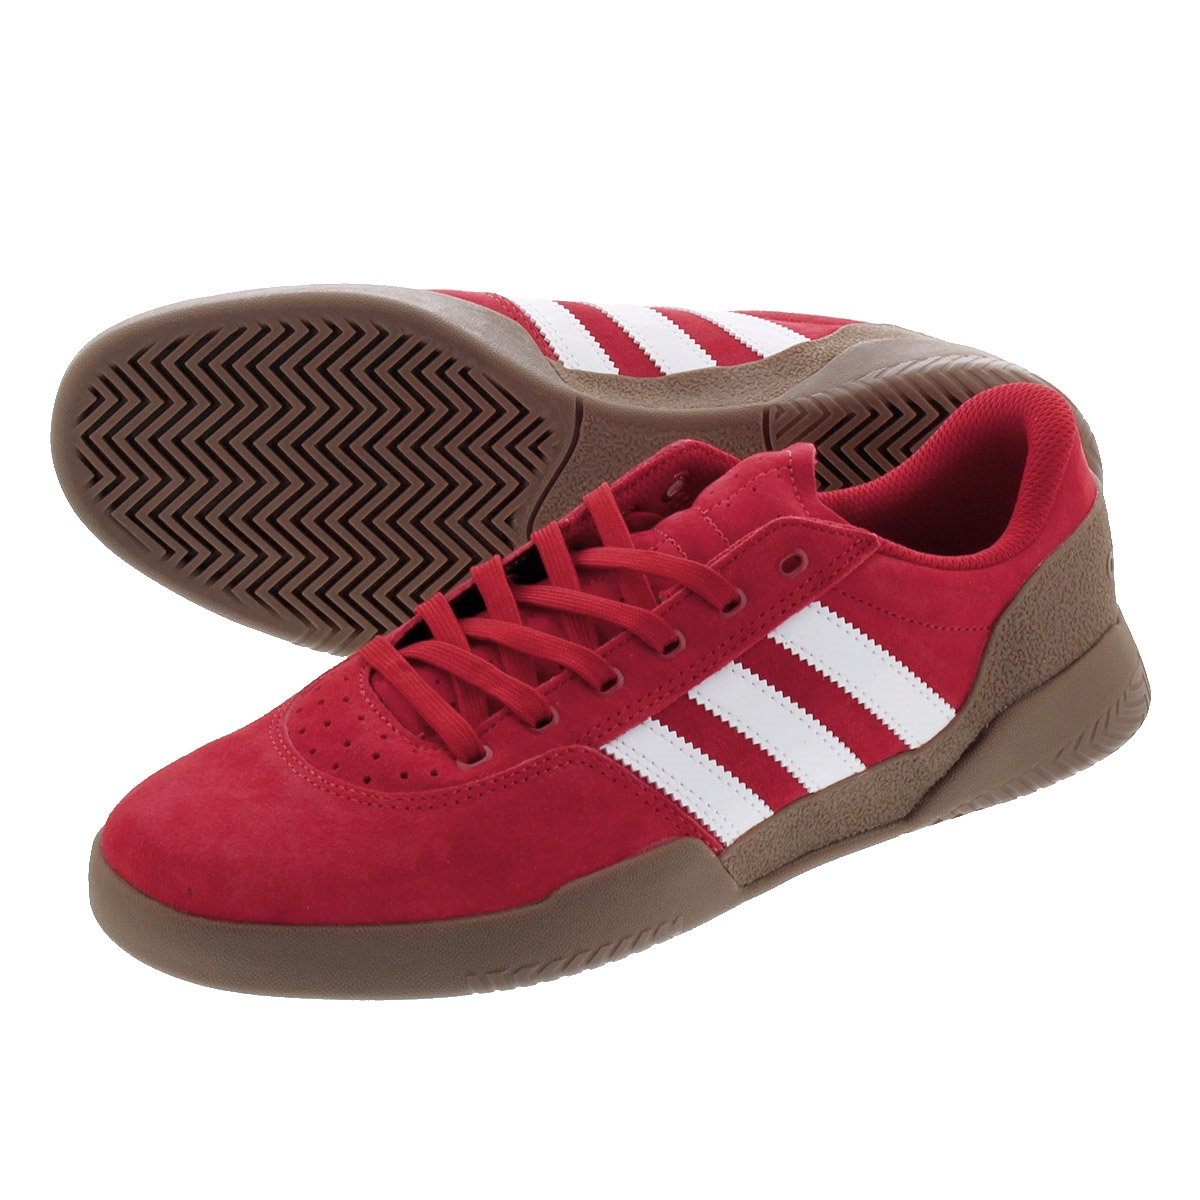 LOWTEX PLUS: adidas CITY CUP Adidas city cup SCARLETRUNNING